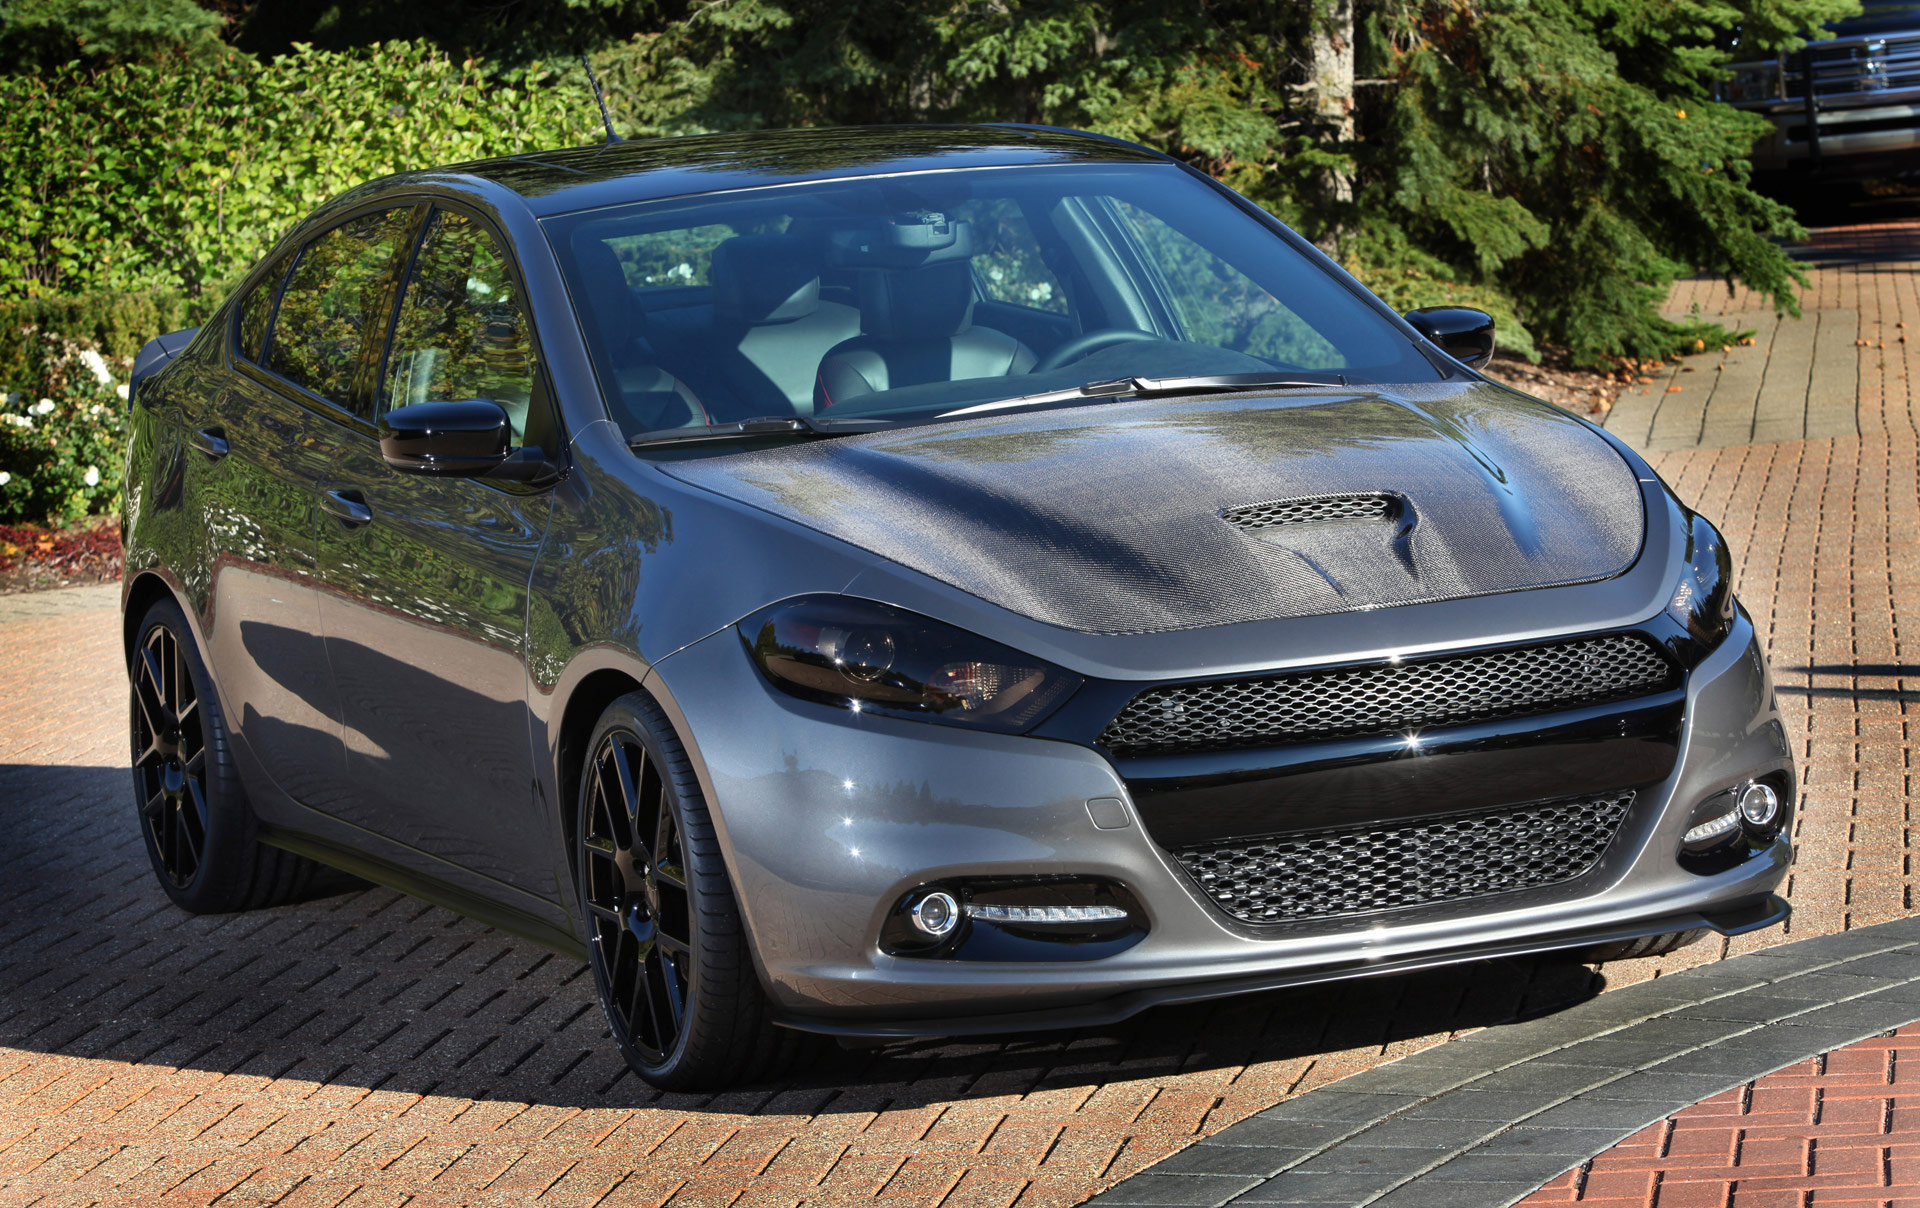 2013 Dodge Dart Carbon Fire News and Information